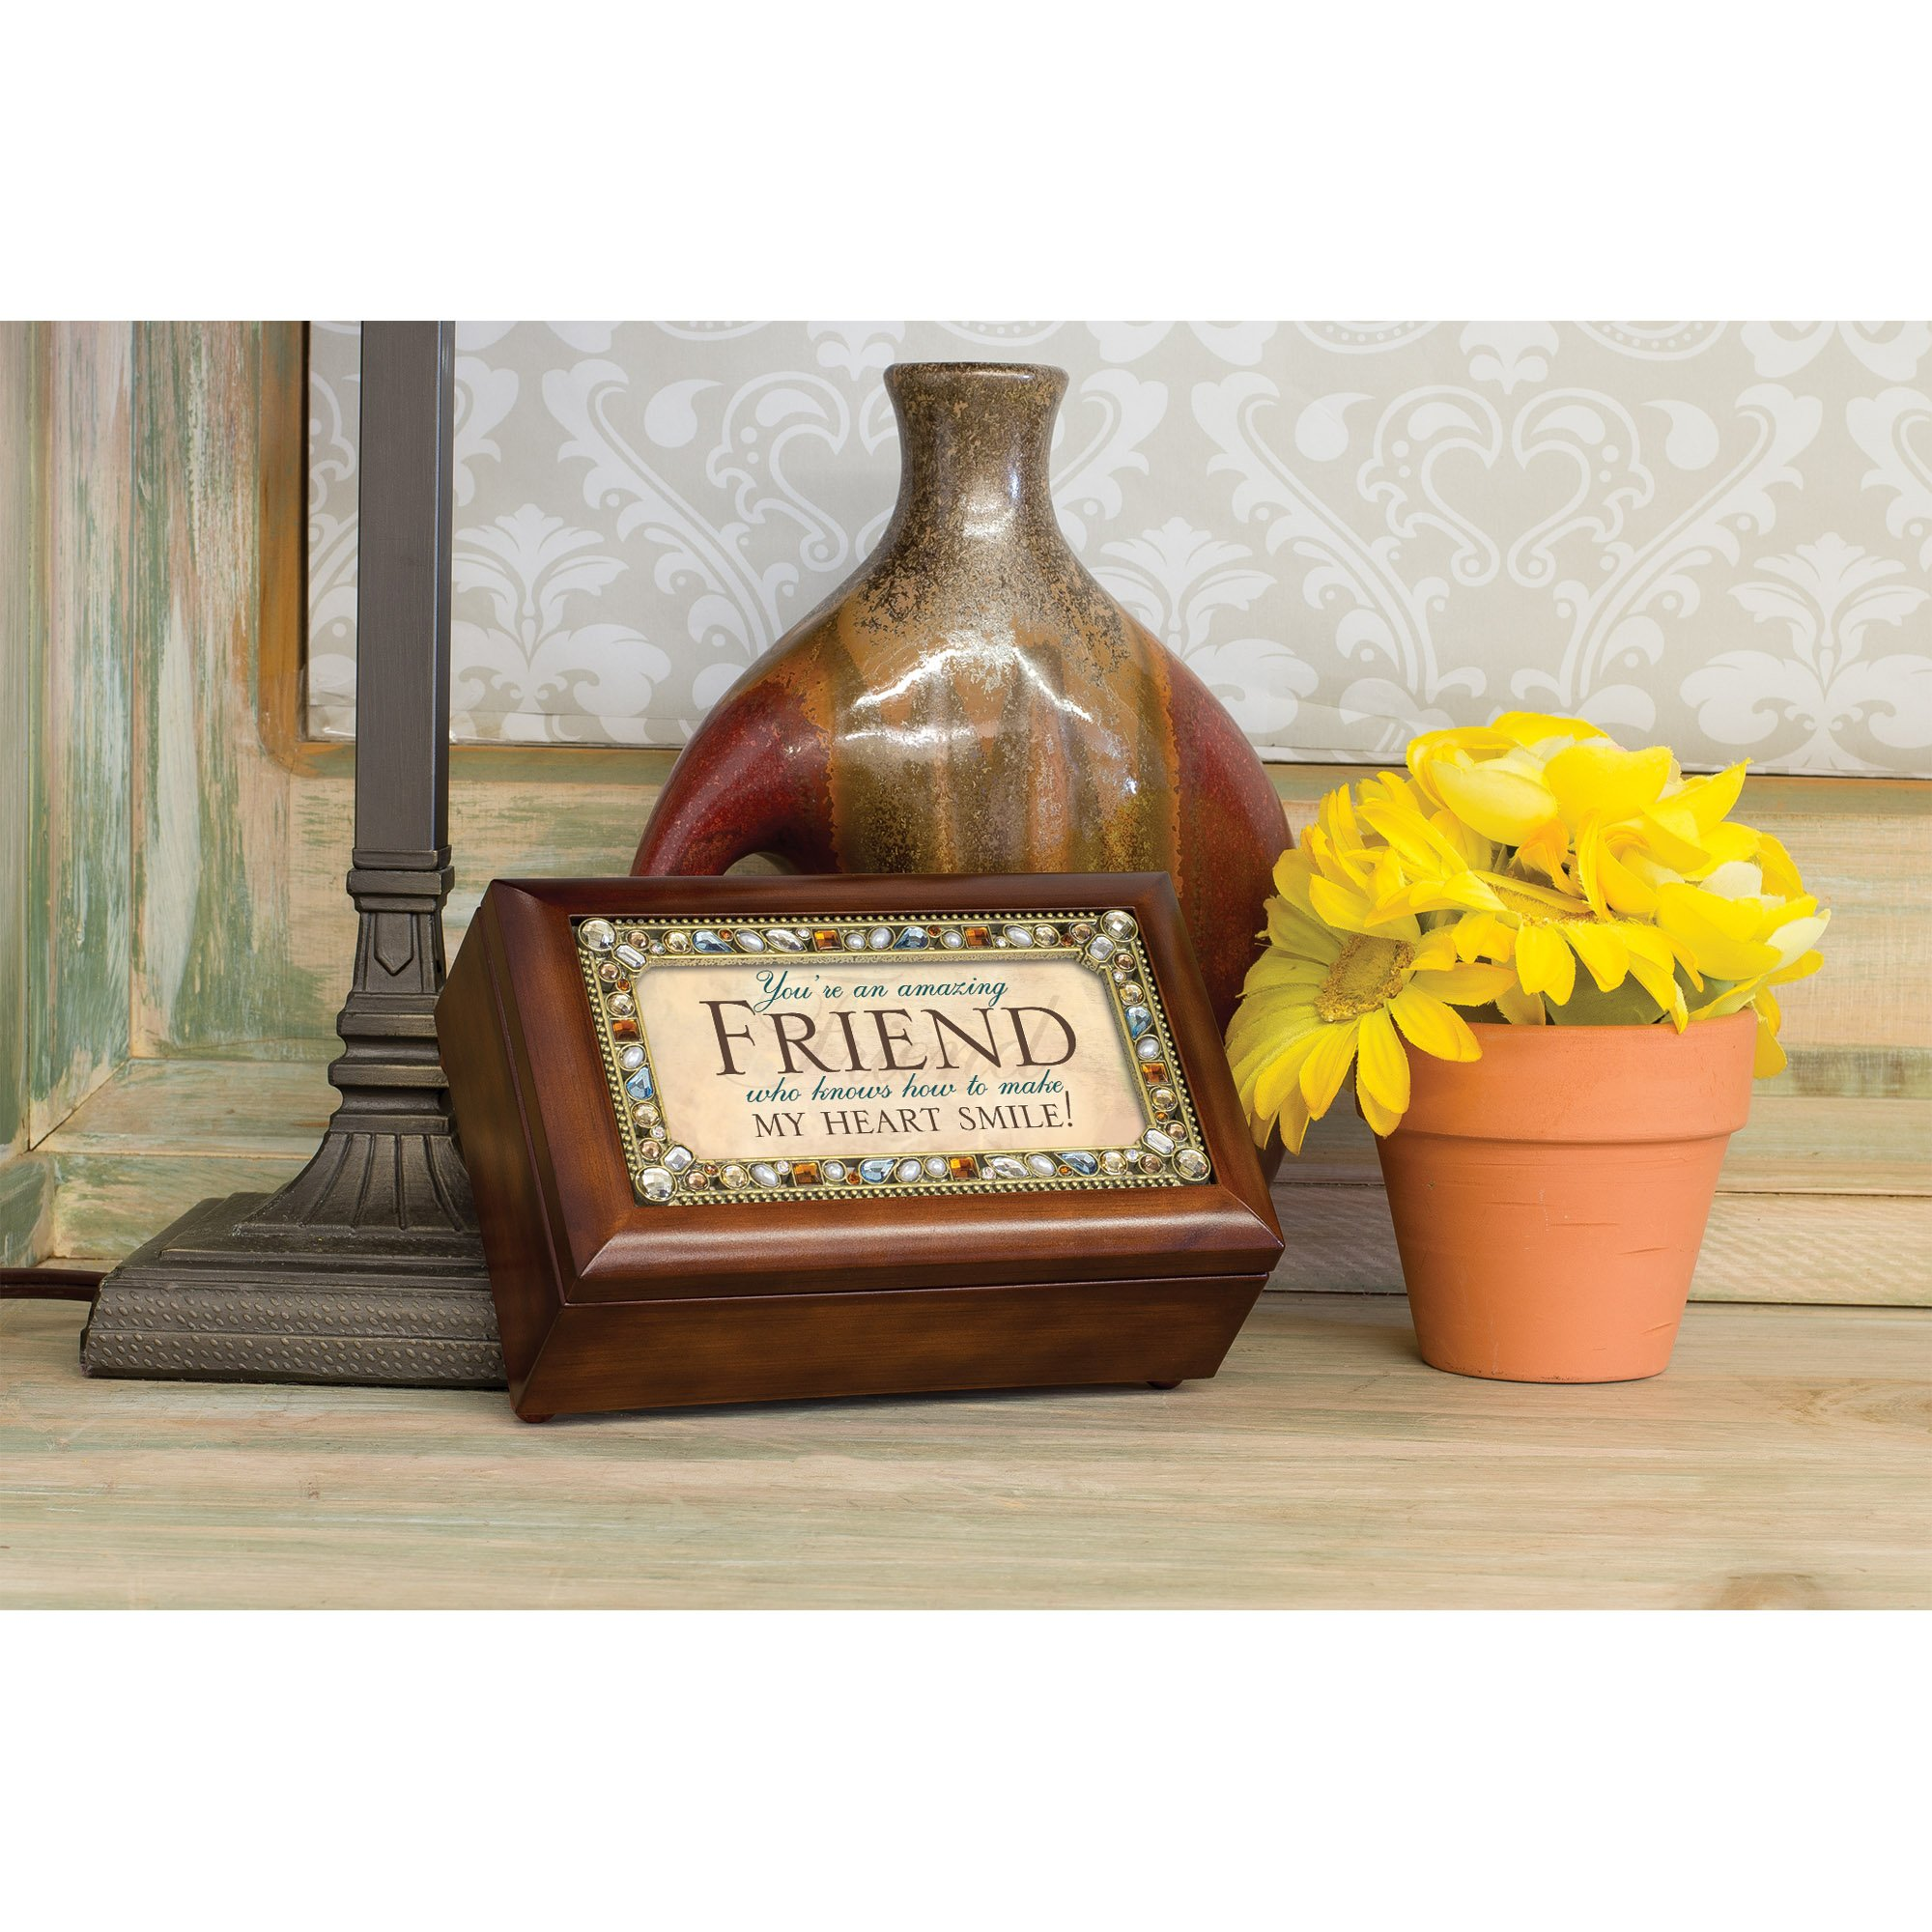 Cottage Garden Friend Jeweled Woodgrain Jewelry Music Box - Plays Tune Thats What Friends Are For by Cottage Garden (Image #5)